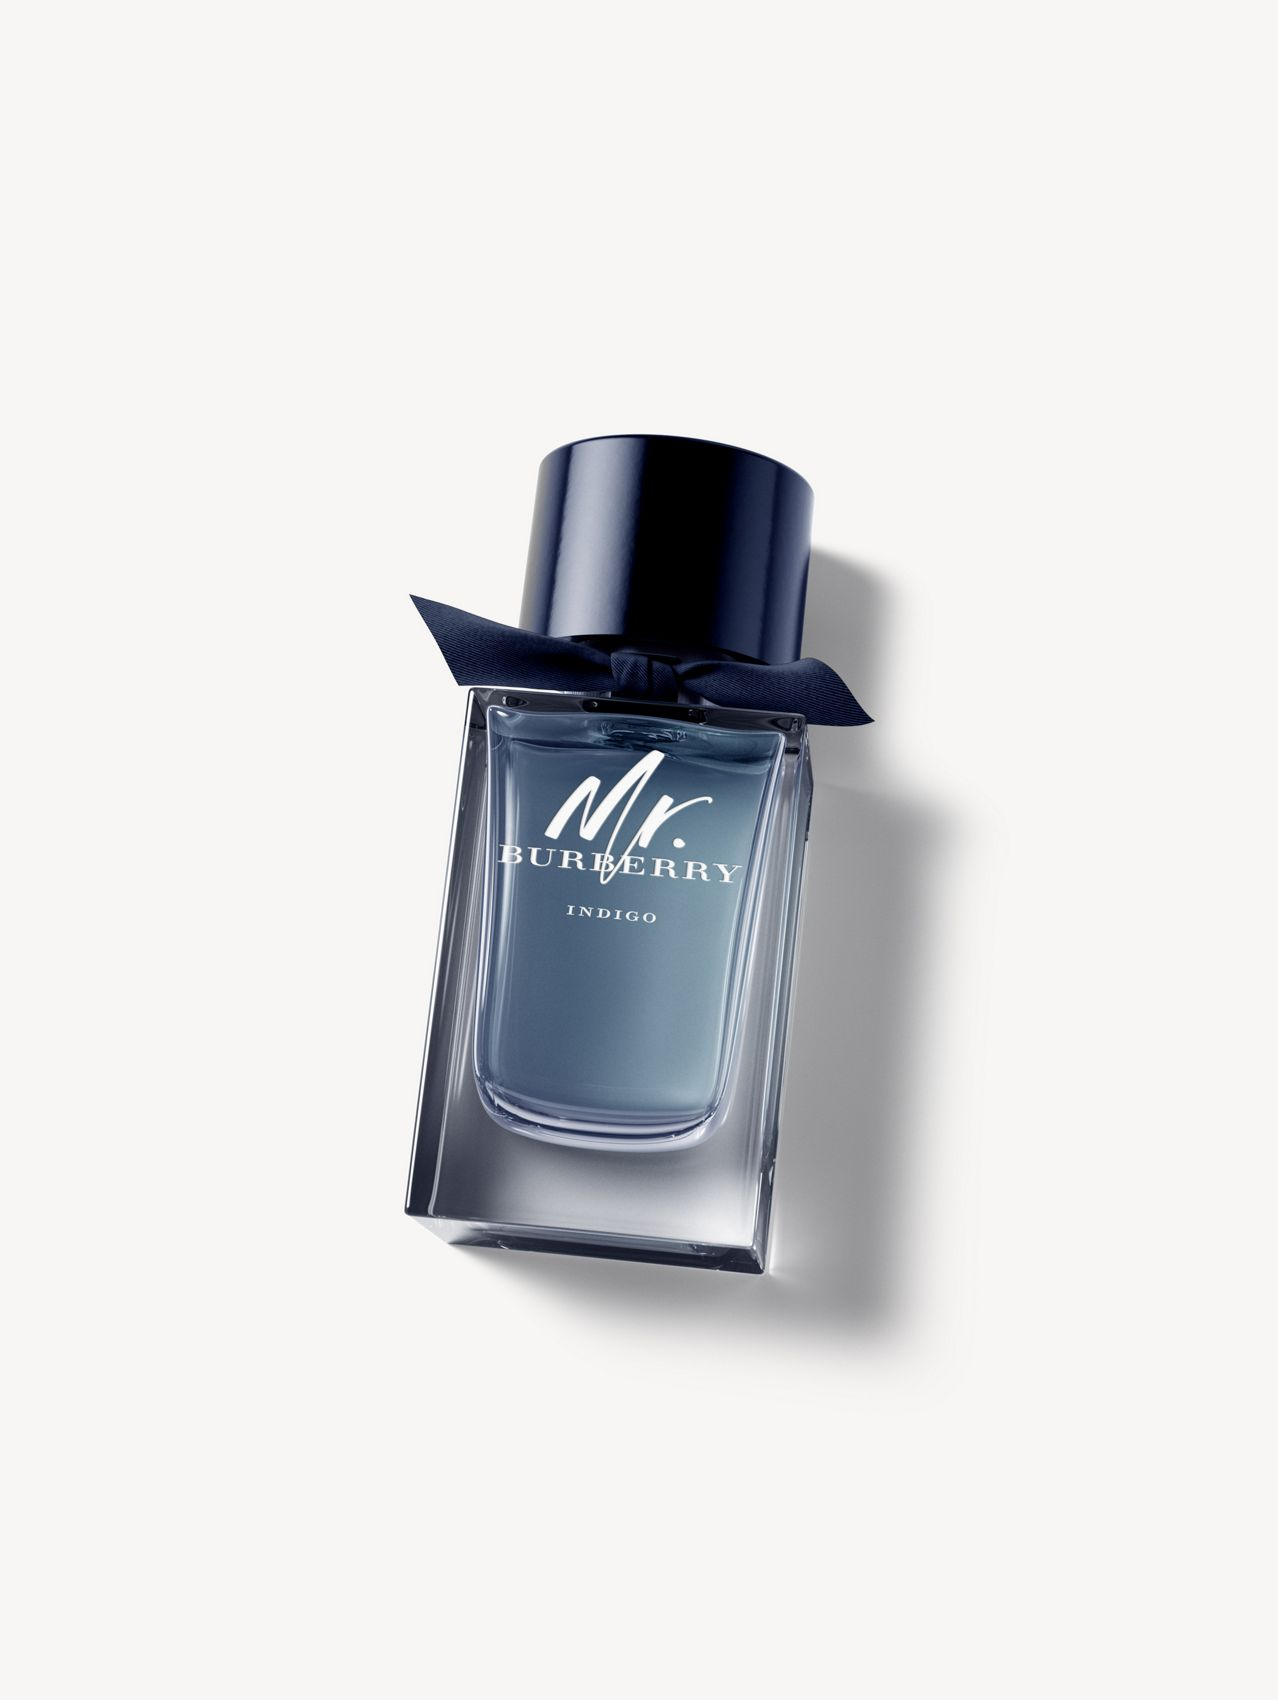 Mr. Burberry Indigo 博柏利先生靛蓝男士淡香水 100ml